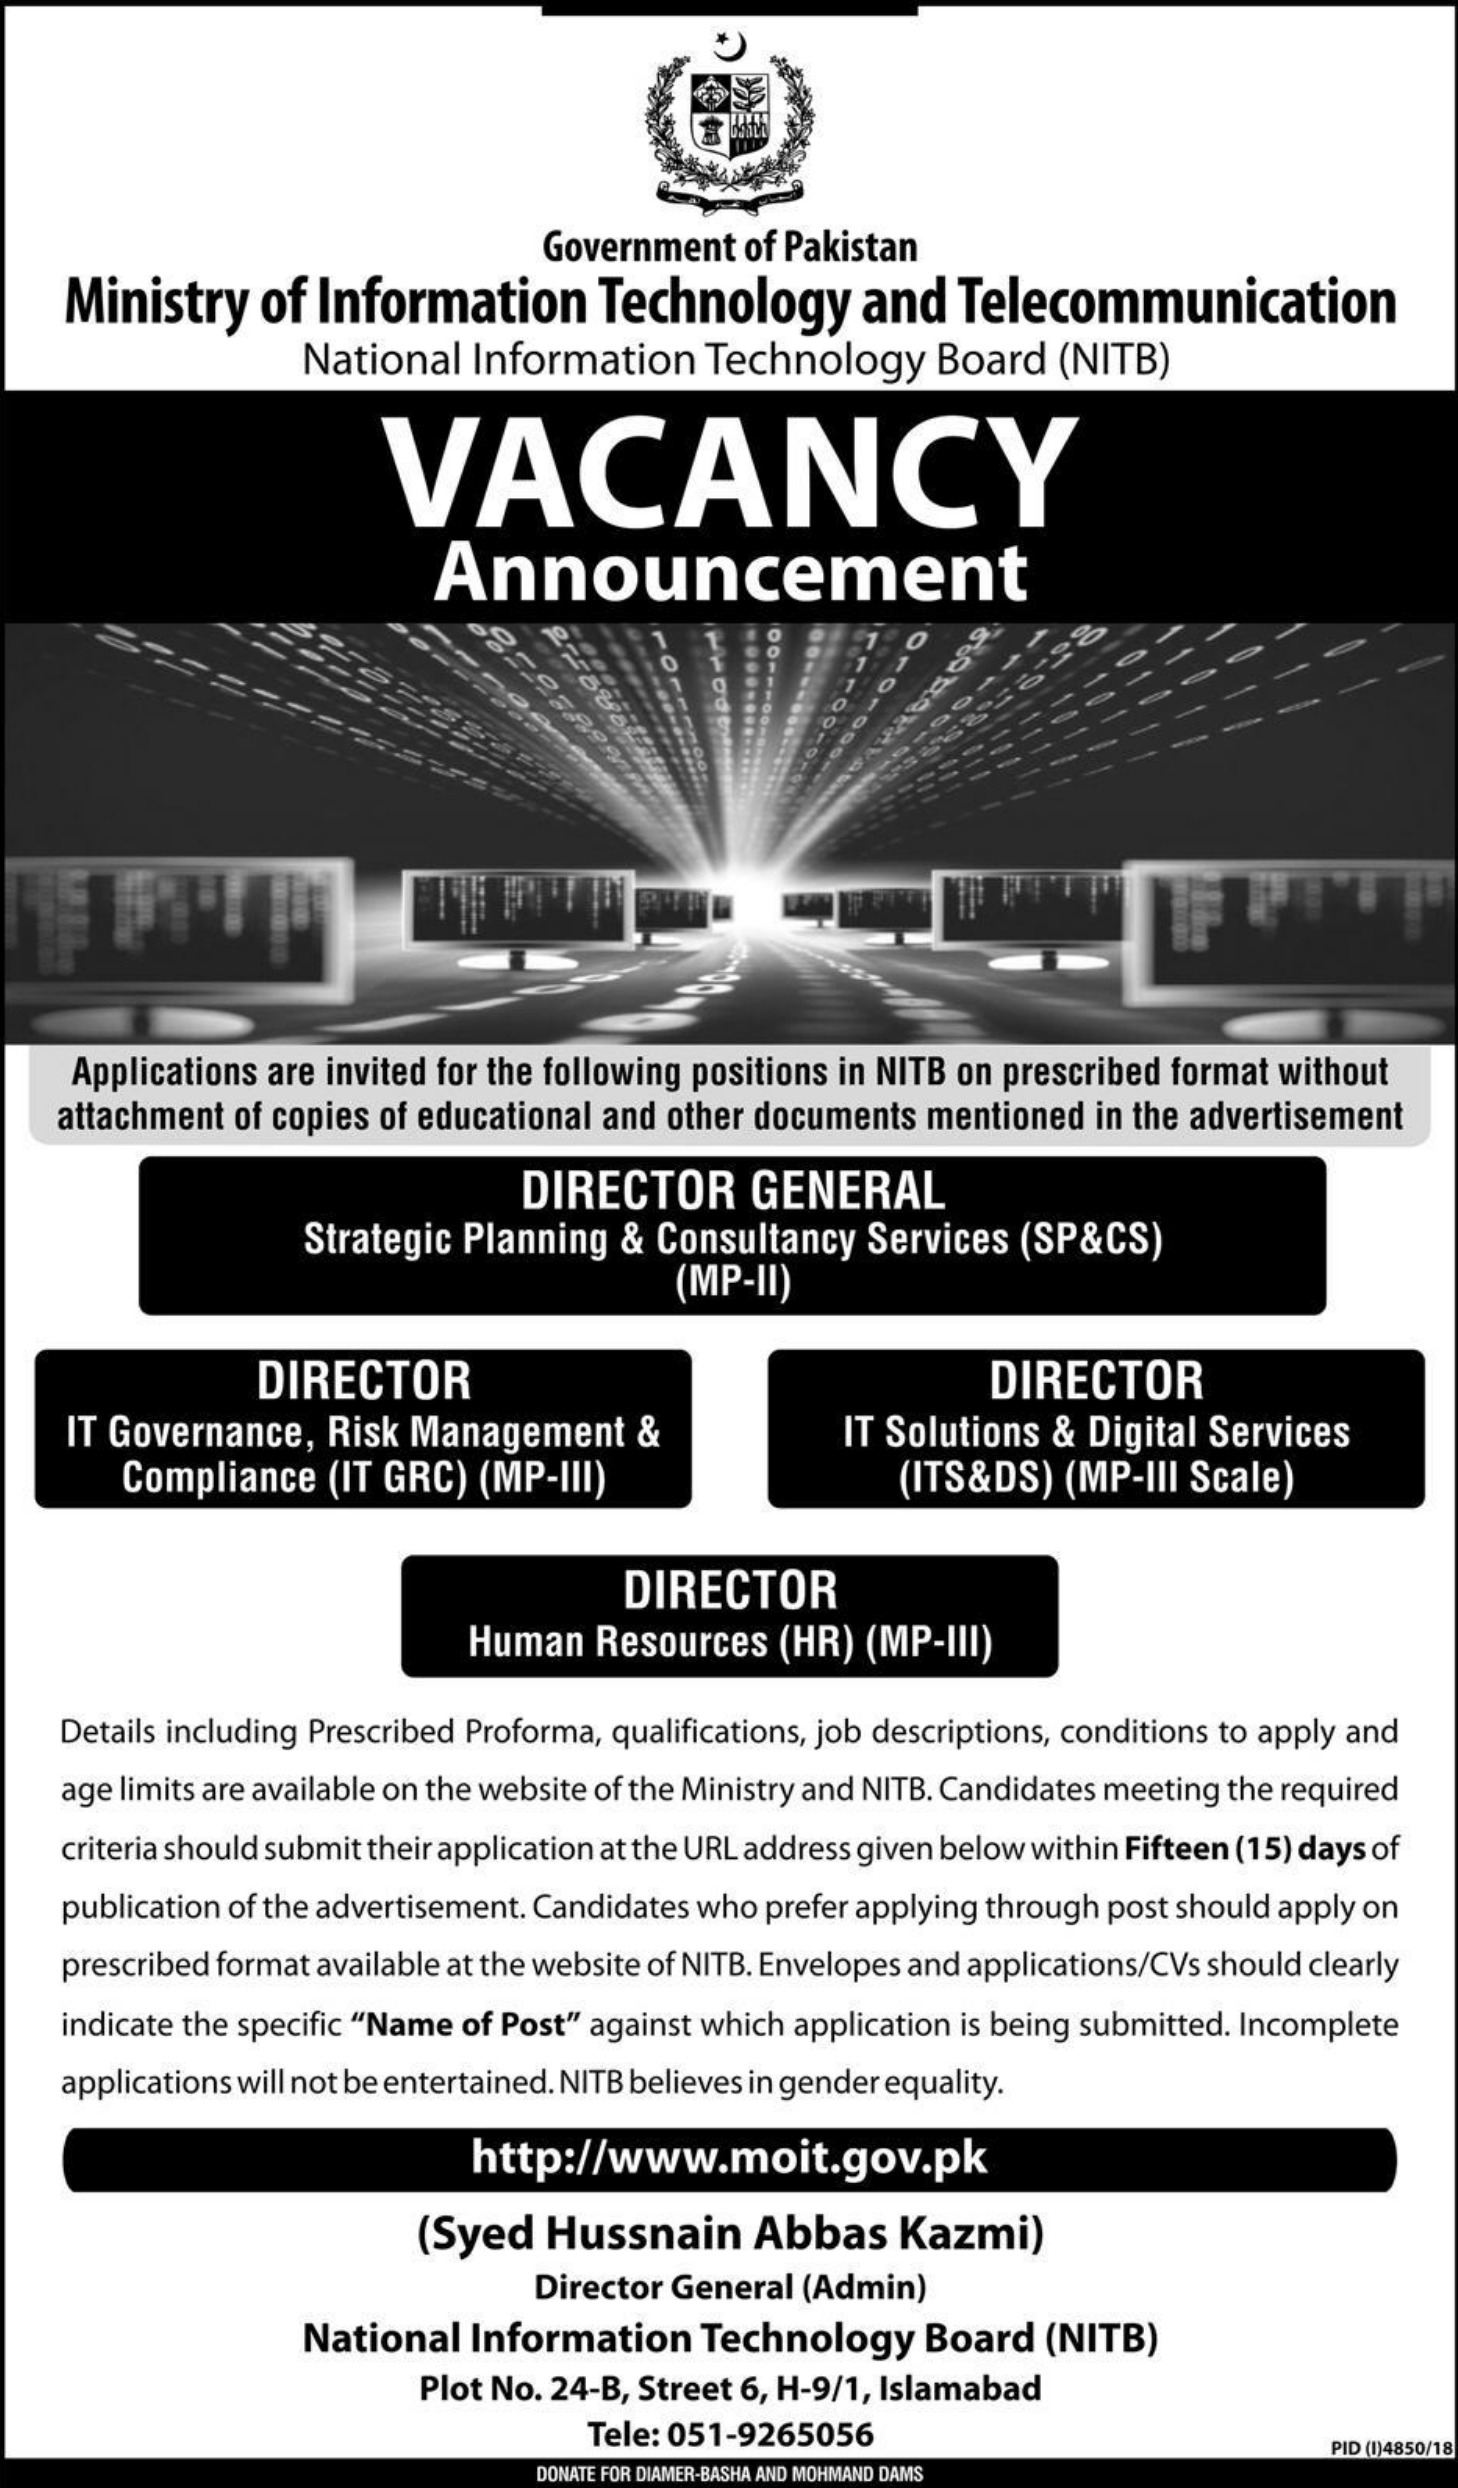 Ministry of Information Technology and Telecommunication Jobs 2019 NITB Islamabad Latest